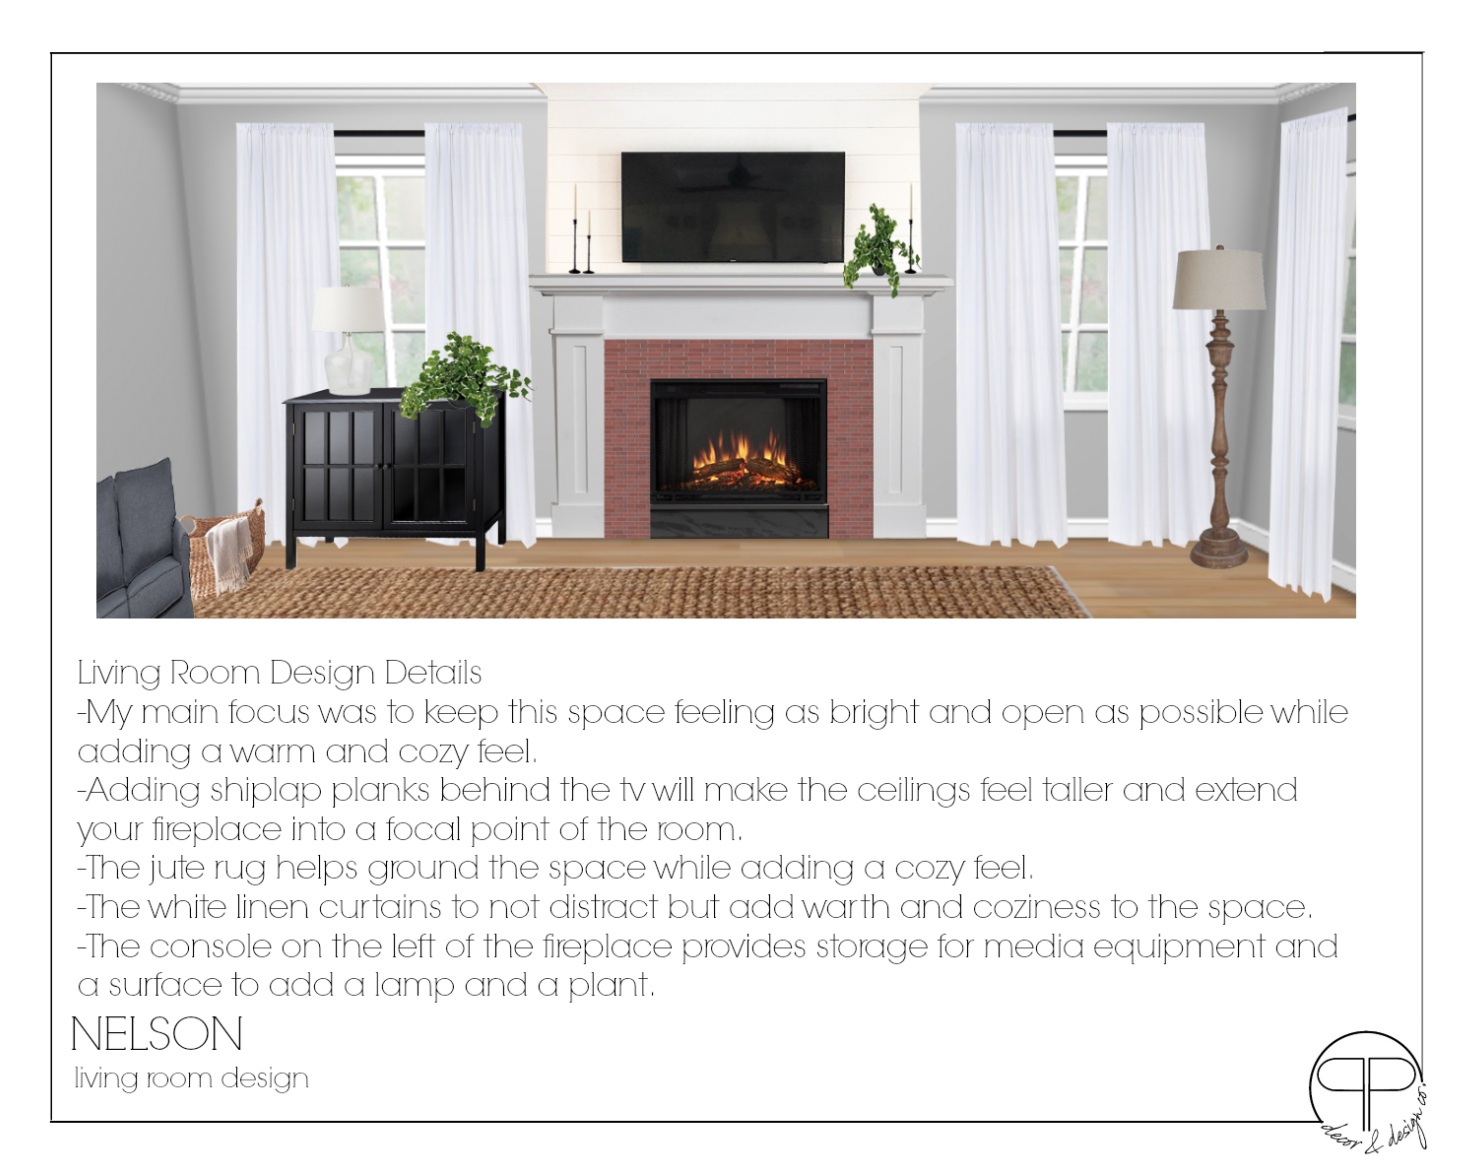 Nelson_Living_Room_Design_1.png